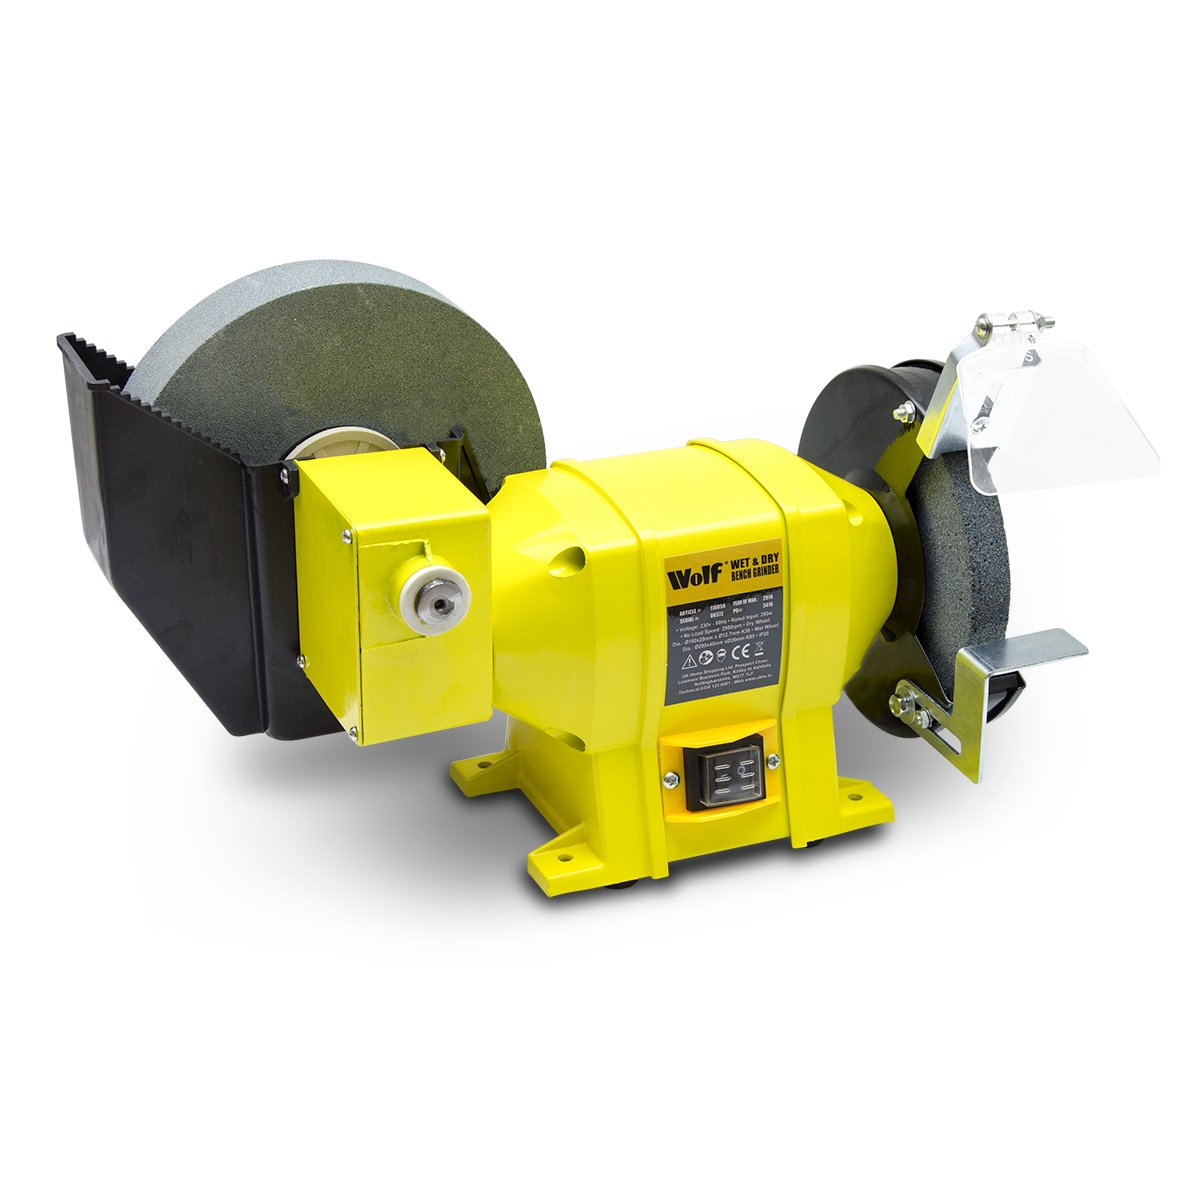 Wolf 250w 8' Wet and 6' Dry Dual Stone Bench Grinder